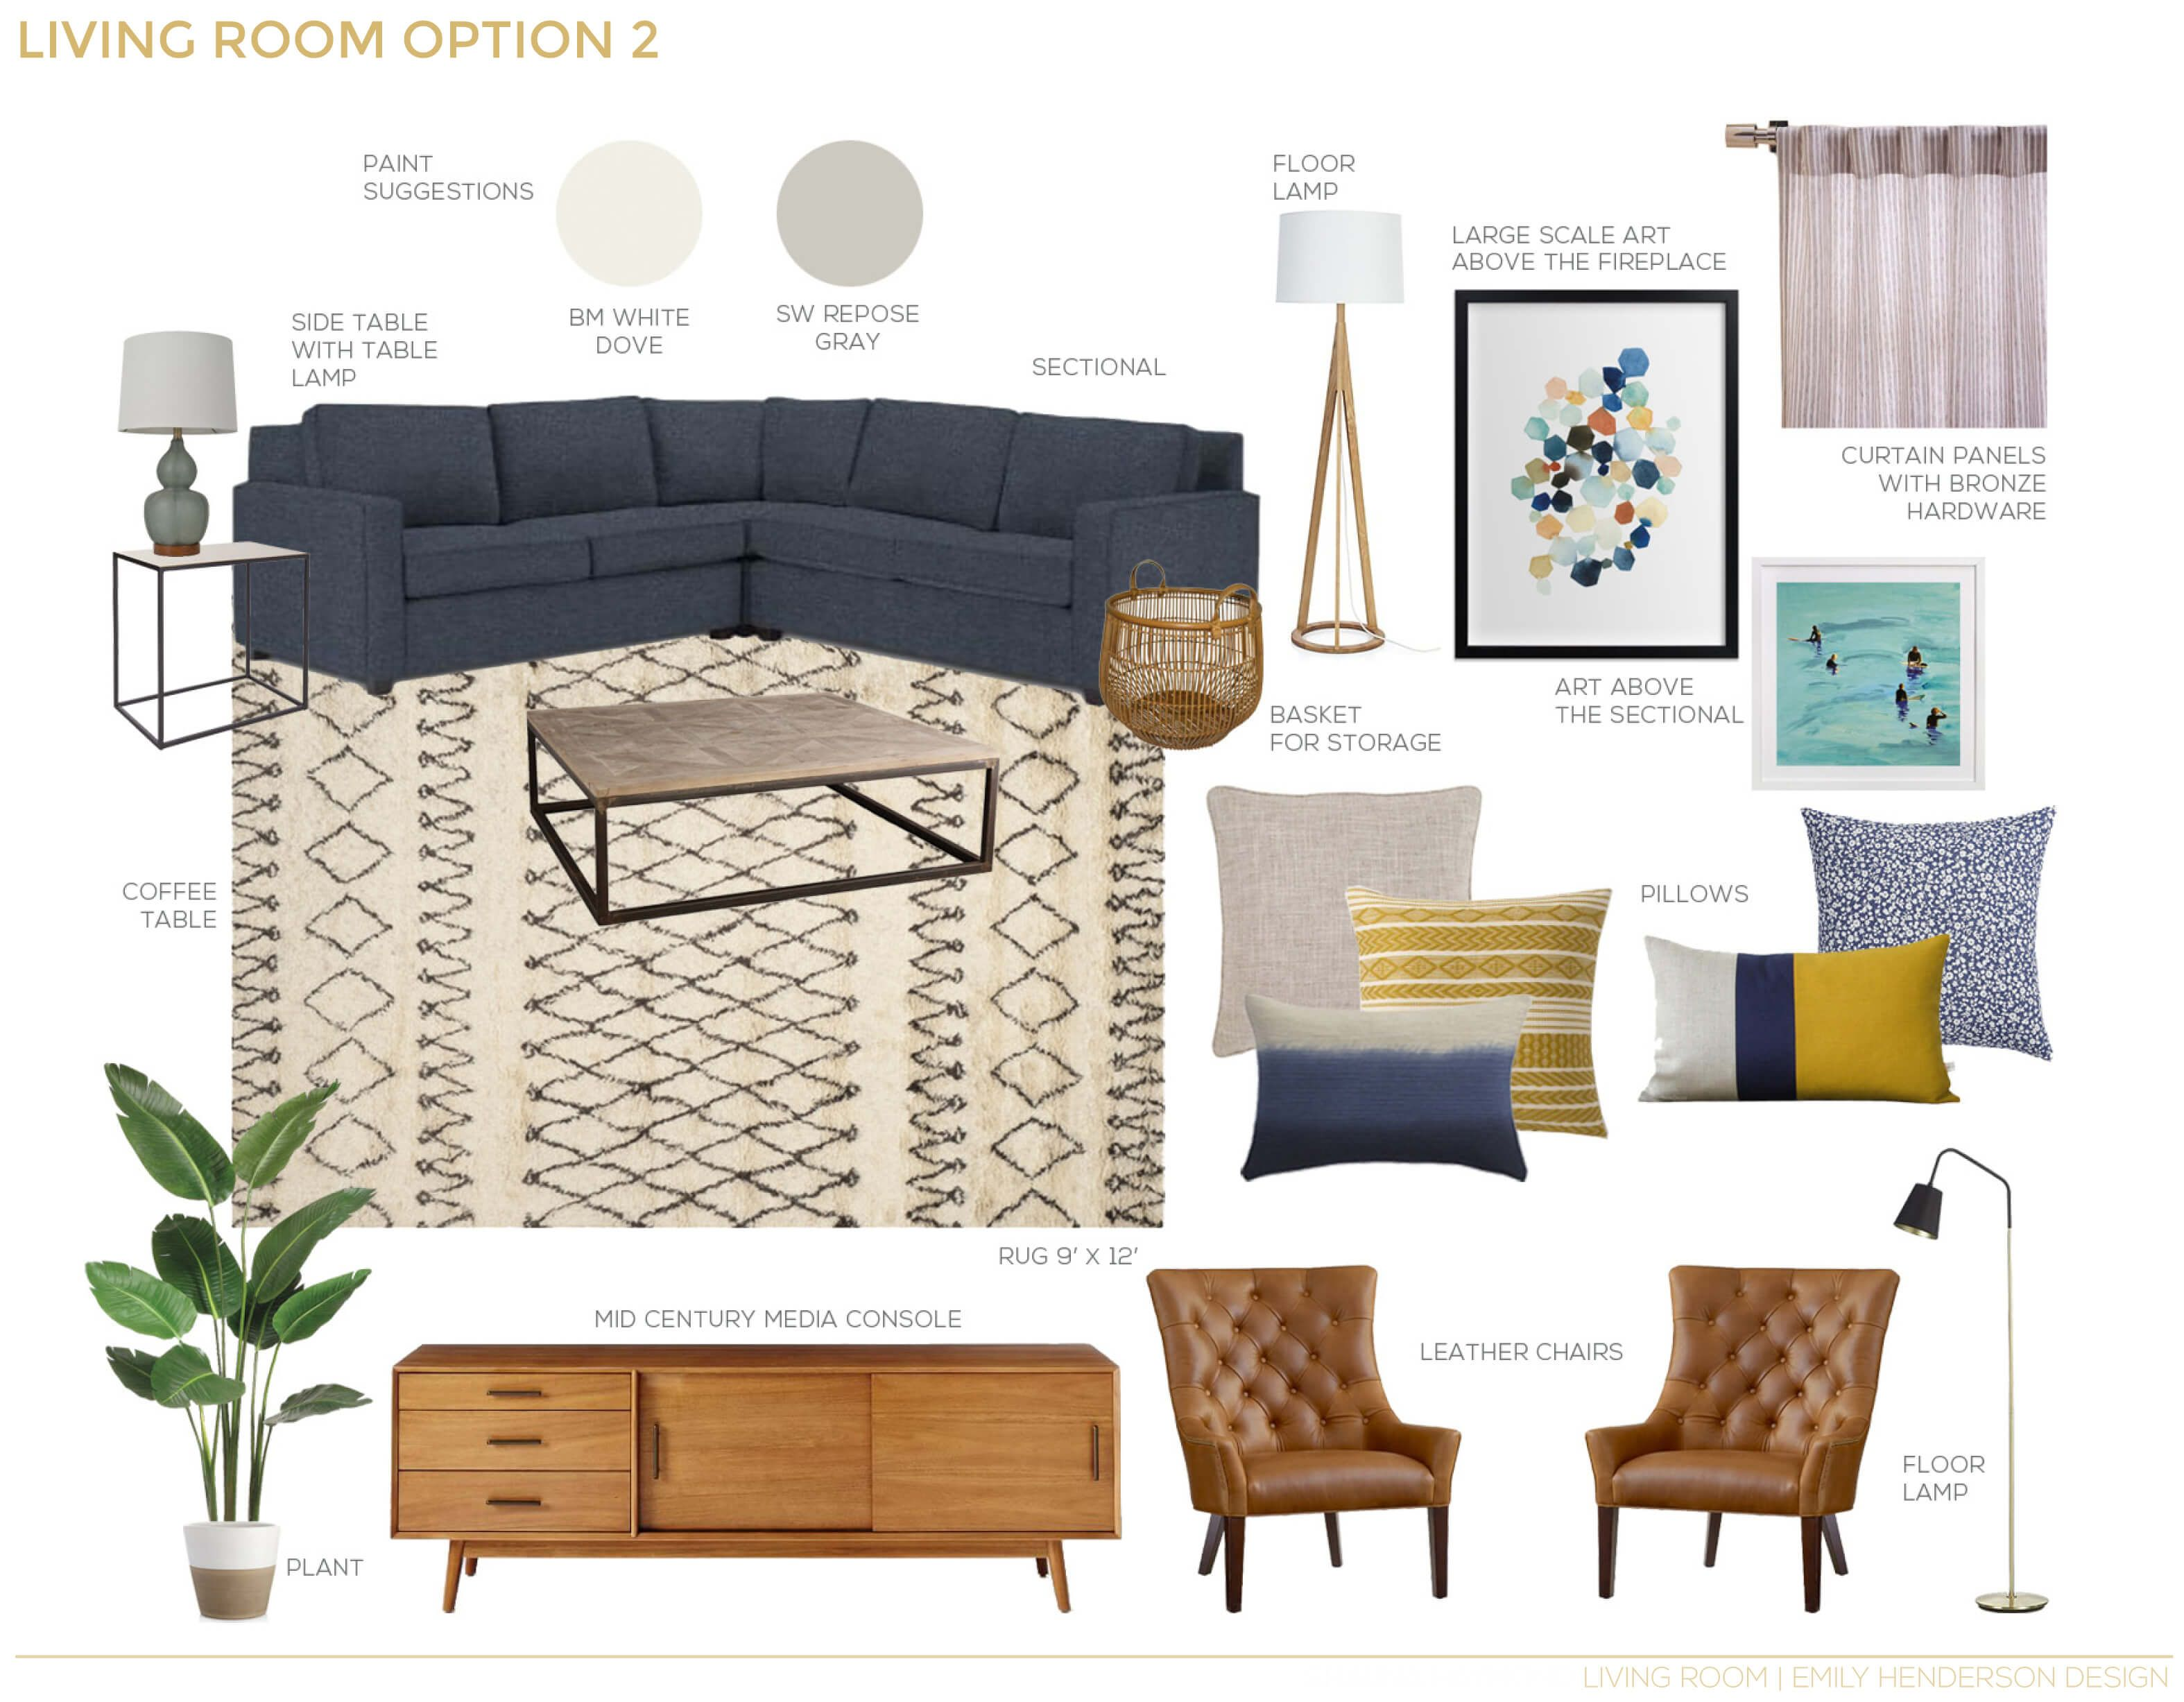 A Textured Traditional Mid Century Living Room | Mid century living ...